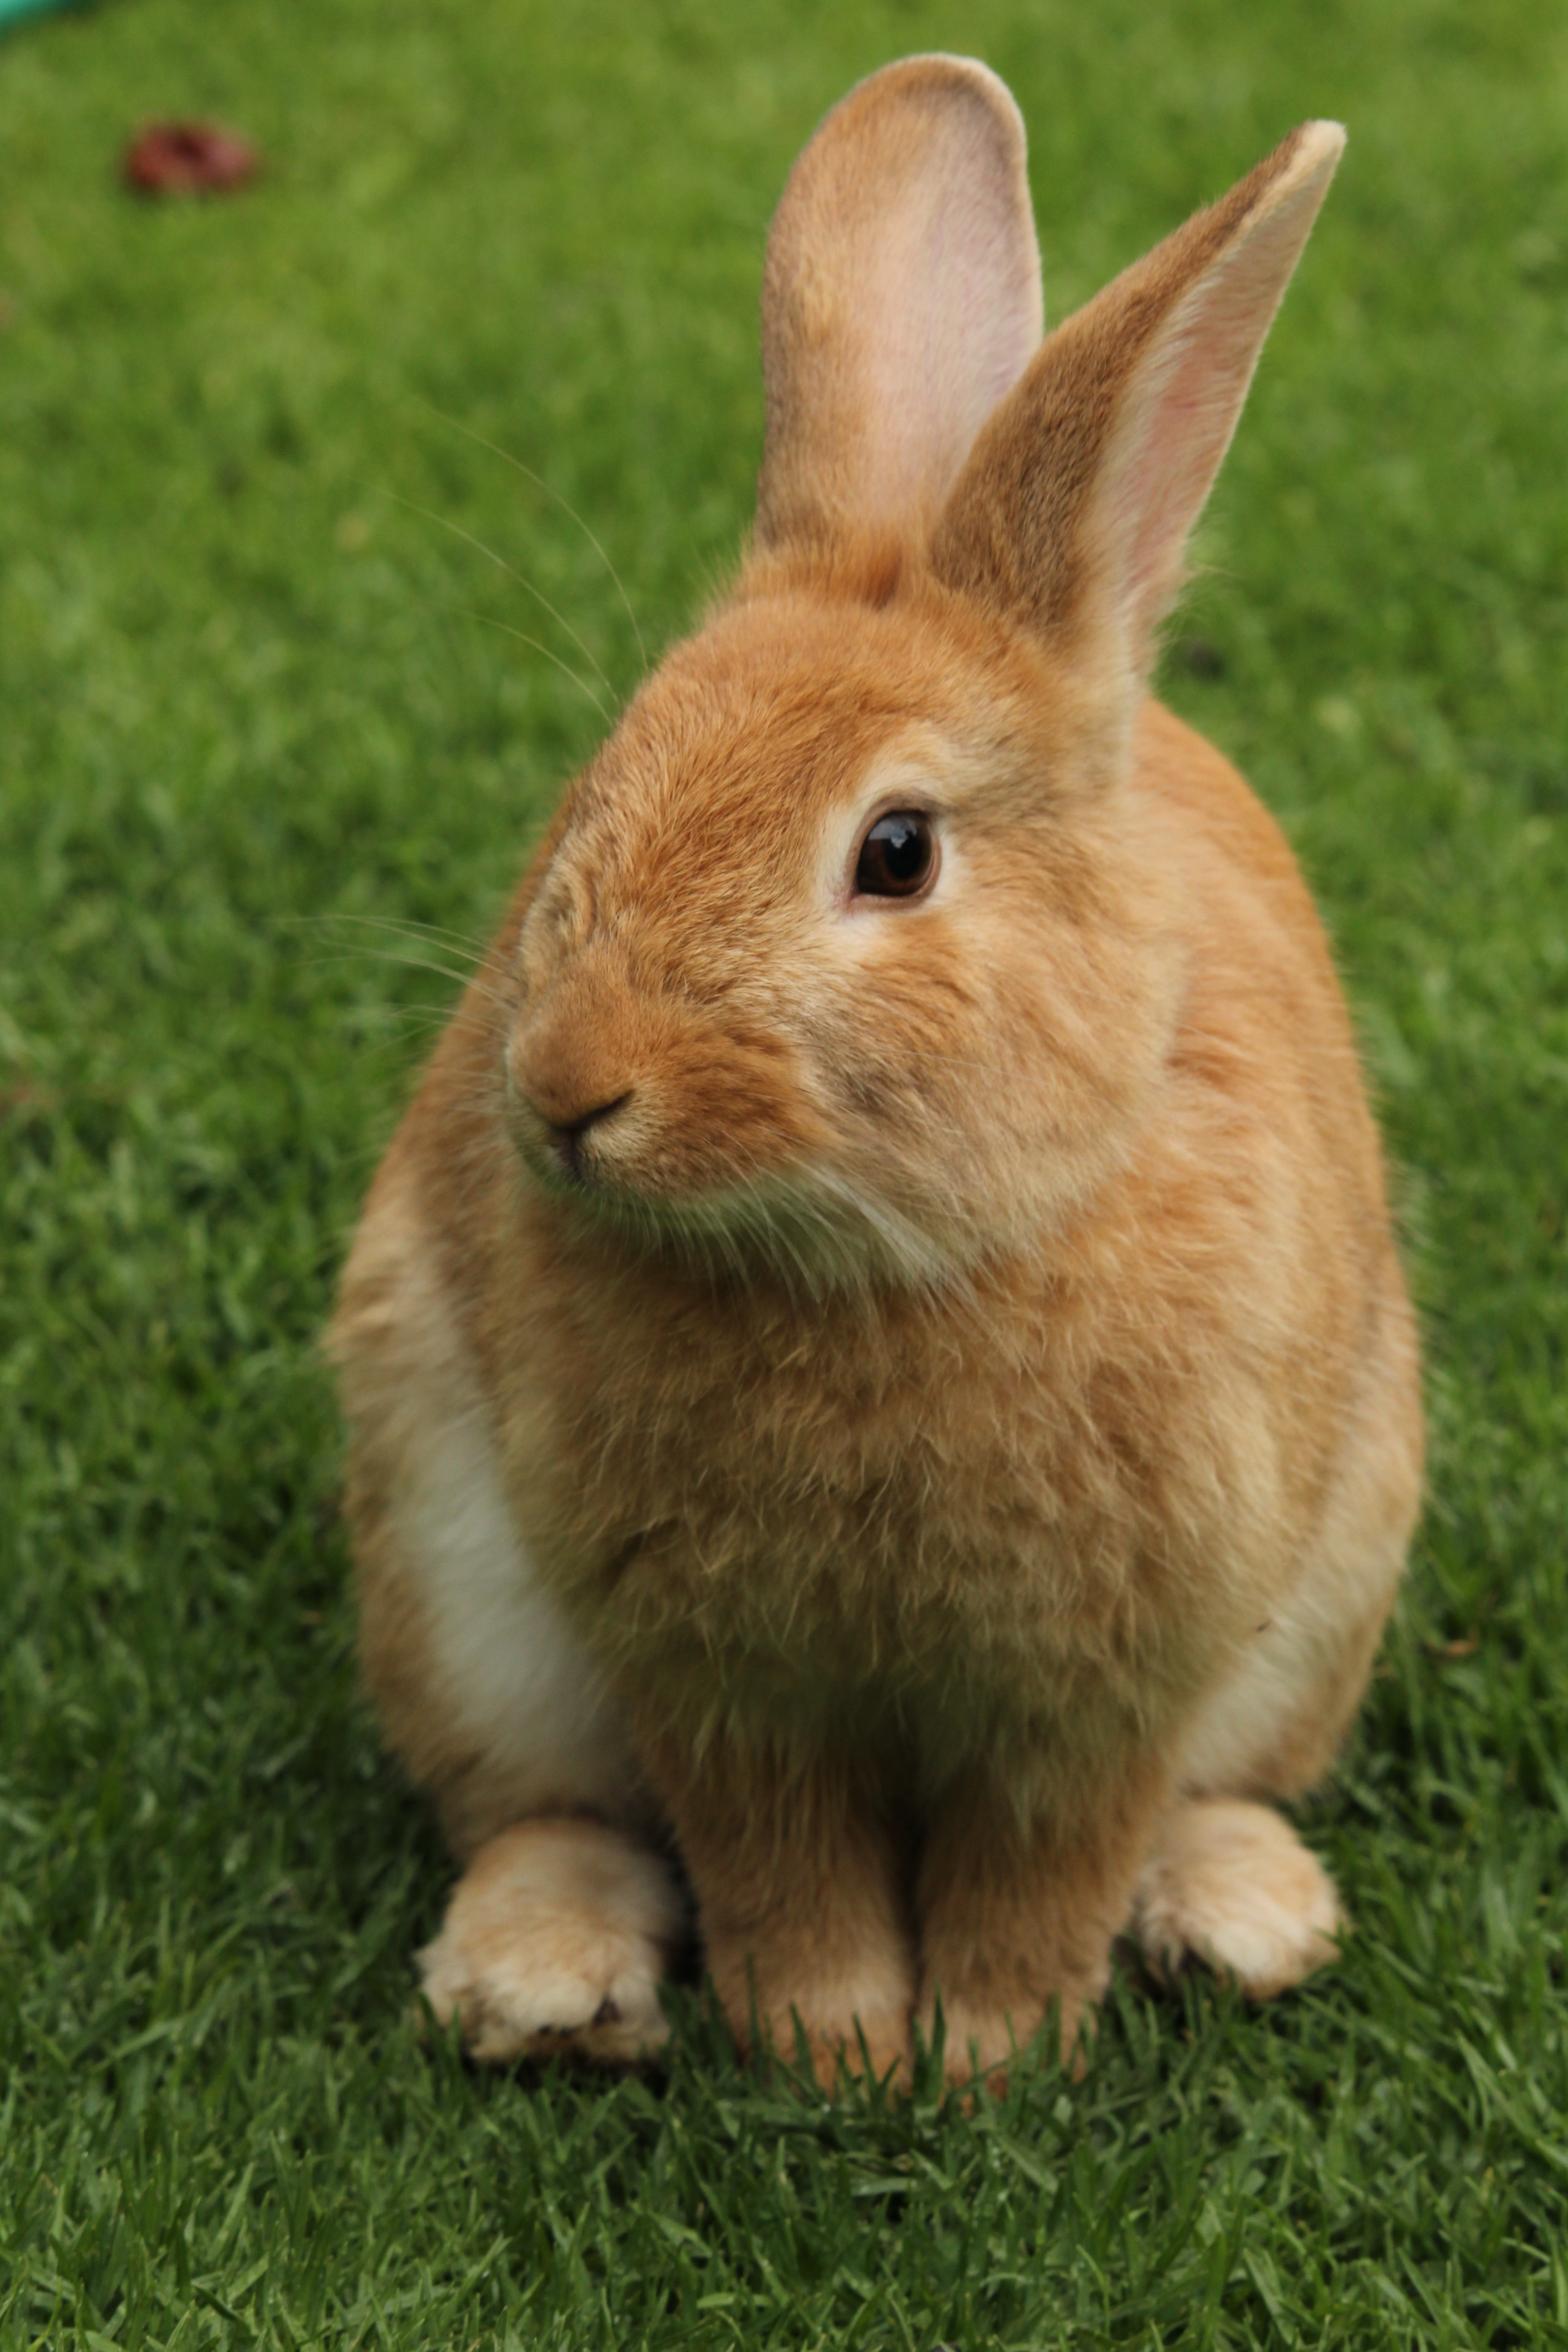 Close-up of Rabbit on Field · Free Stock Photo